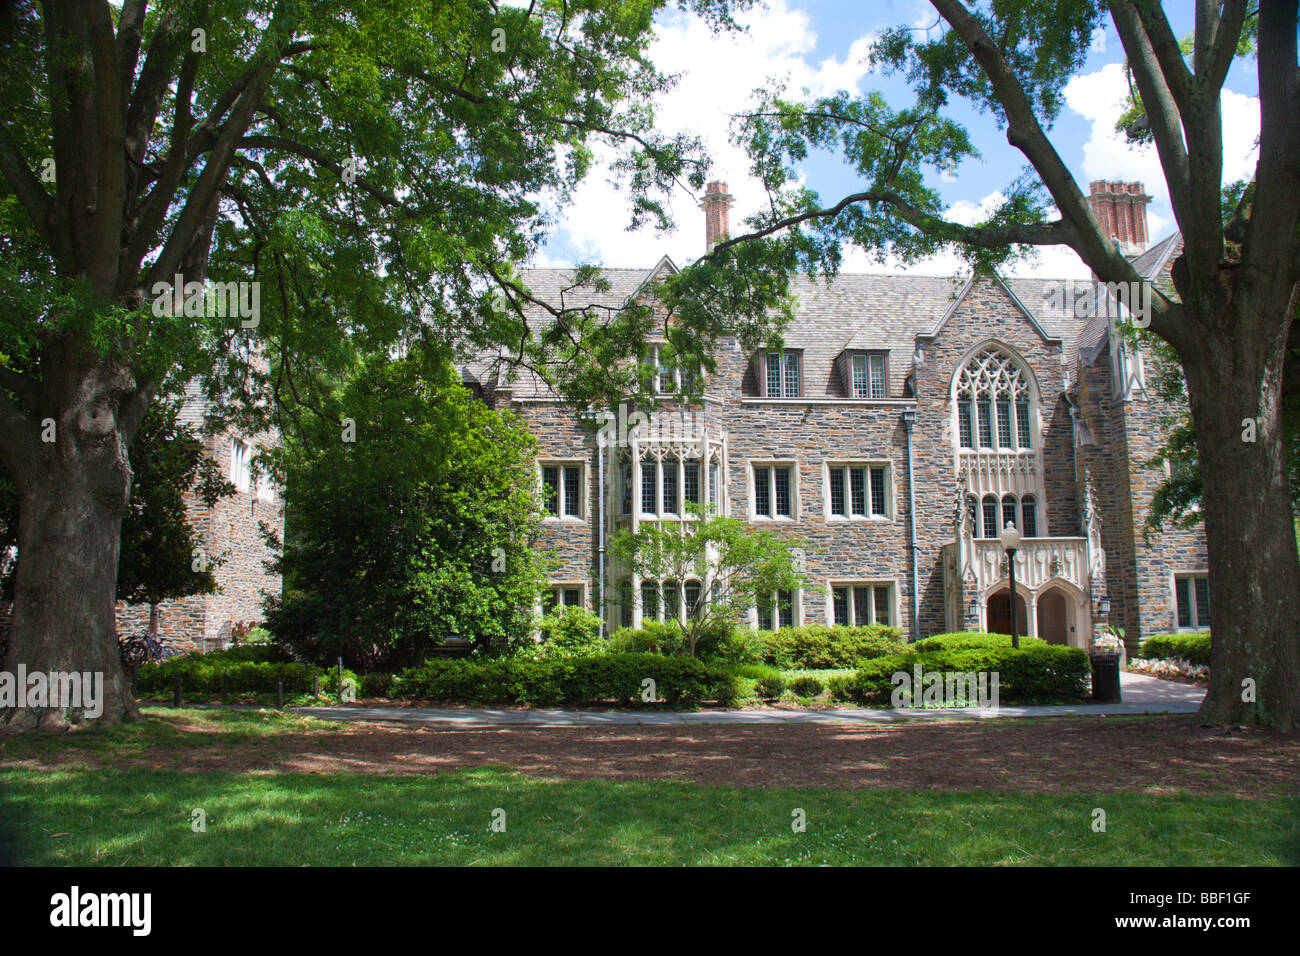 Social Sciences Building, Duke University, Durham NC USA - Stock Image